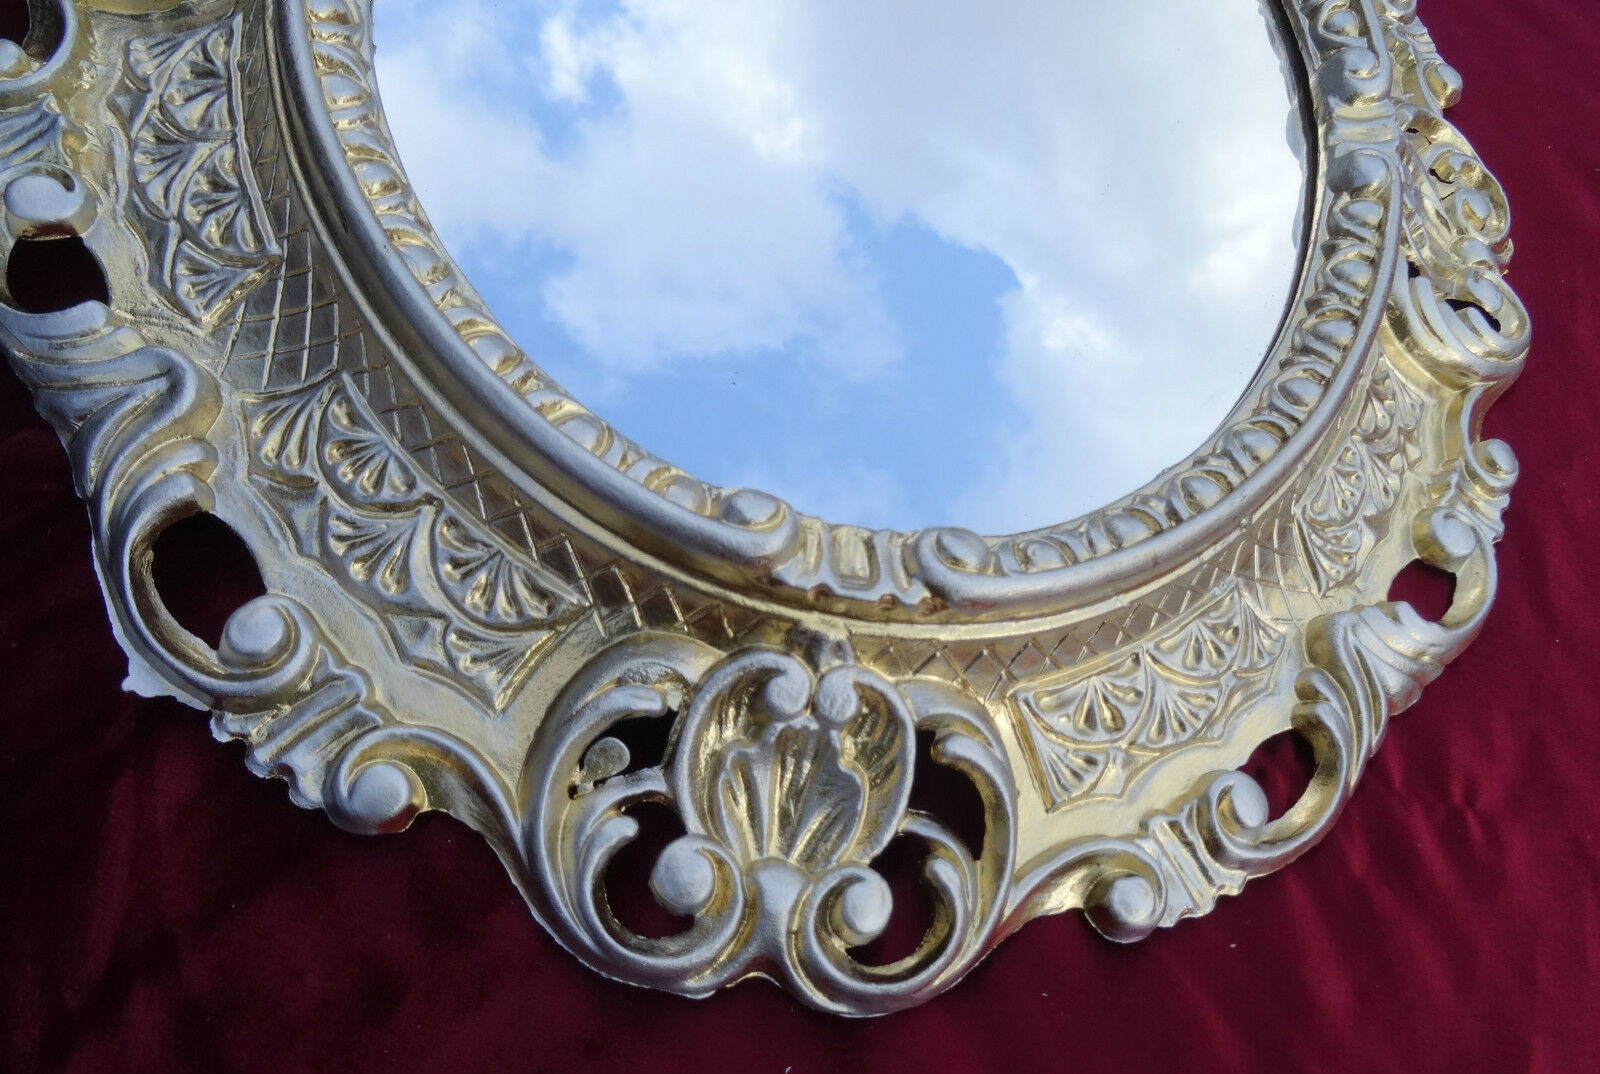 Wall Mirror Gold Silver Oval 45x38 Cm Baroque Antique